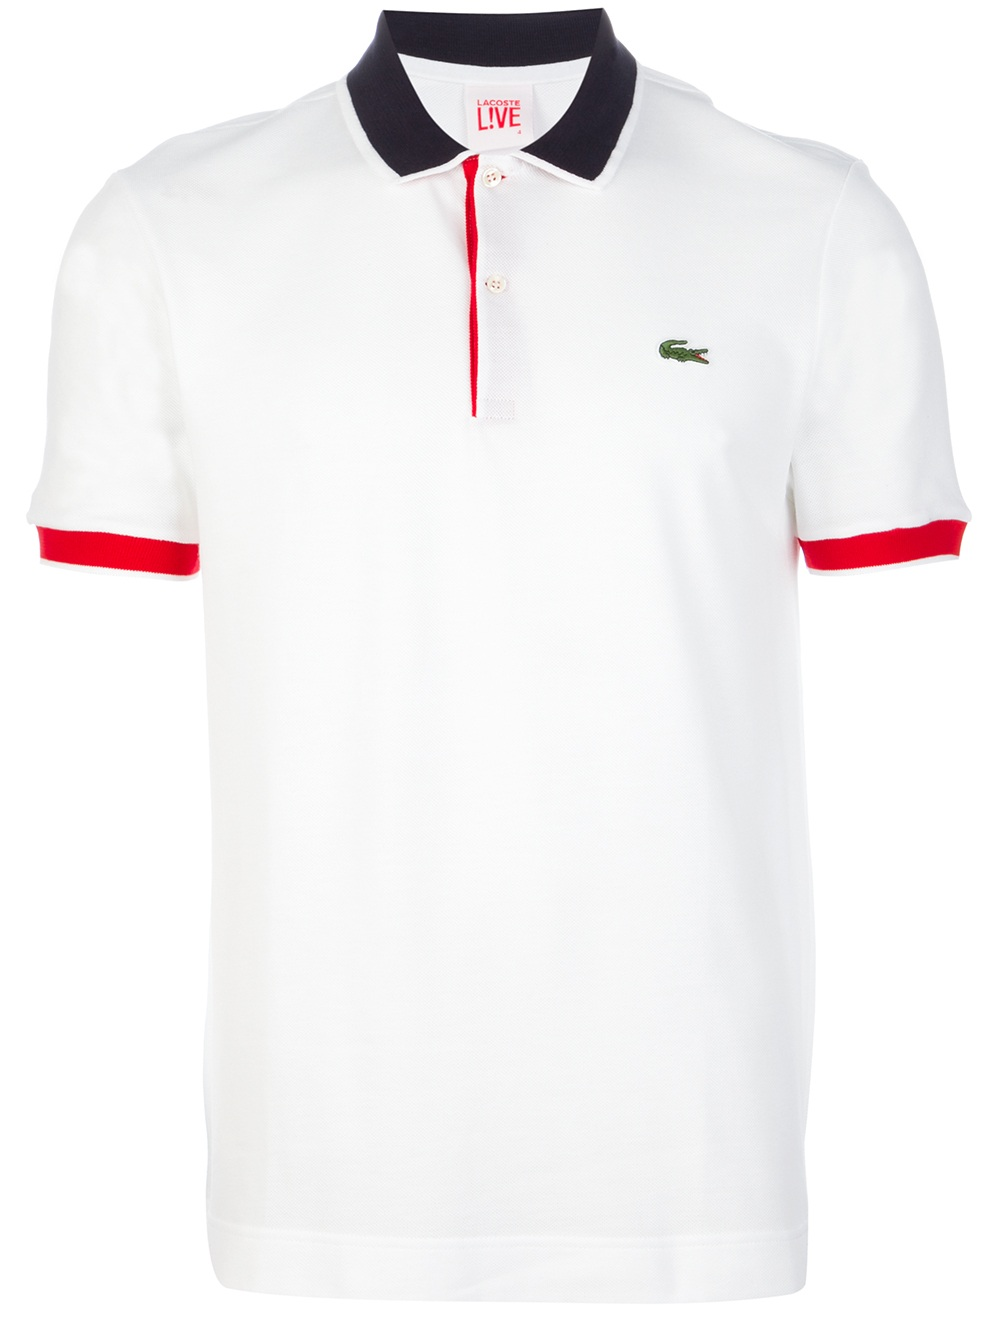 lacoste l ive classic polo shirt in white for men lyst. Black Bedroom Furniture Sets. Home Design Ideas